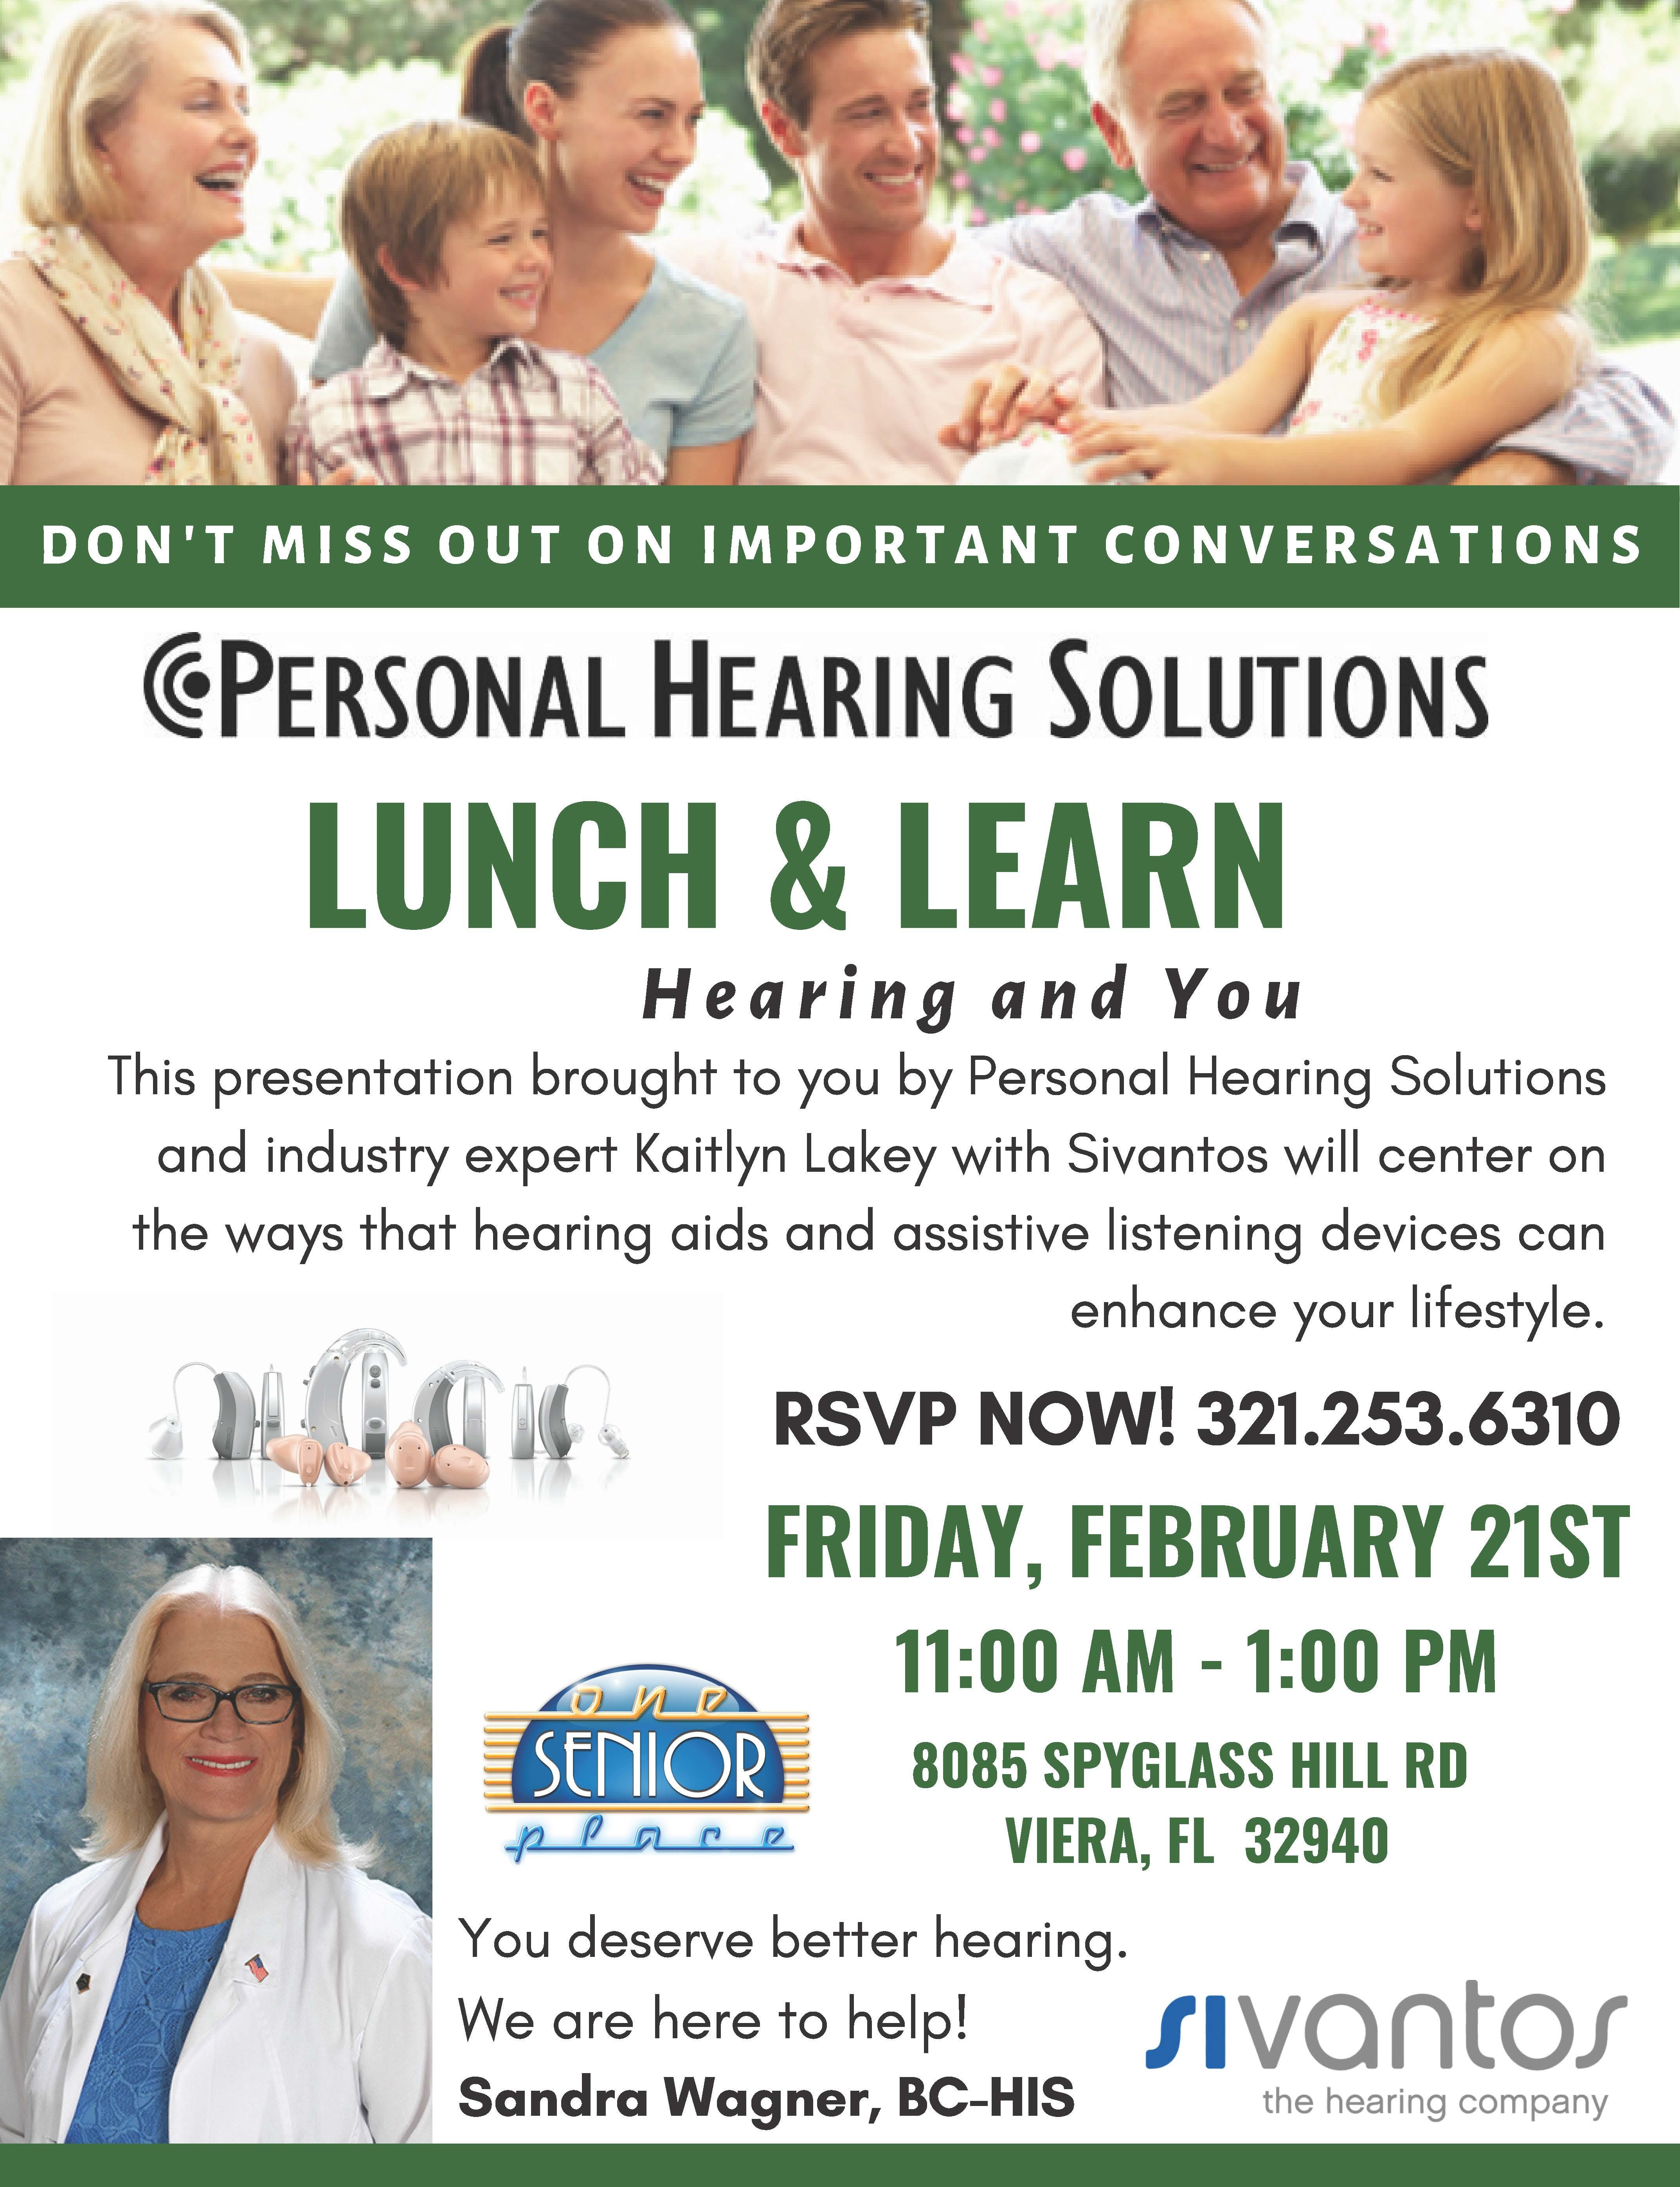 Can You Hear Me Now? Lunch and Learn Seminar presented by Personal Hearing Solutions